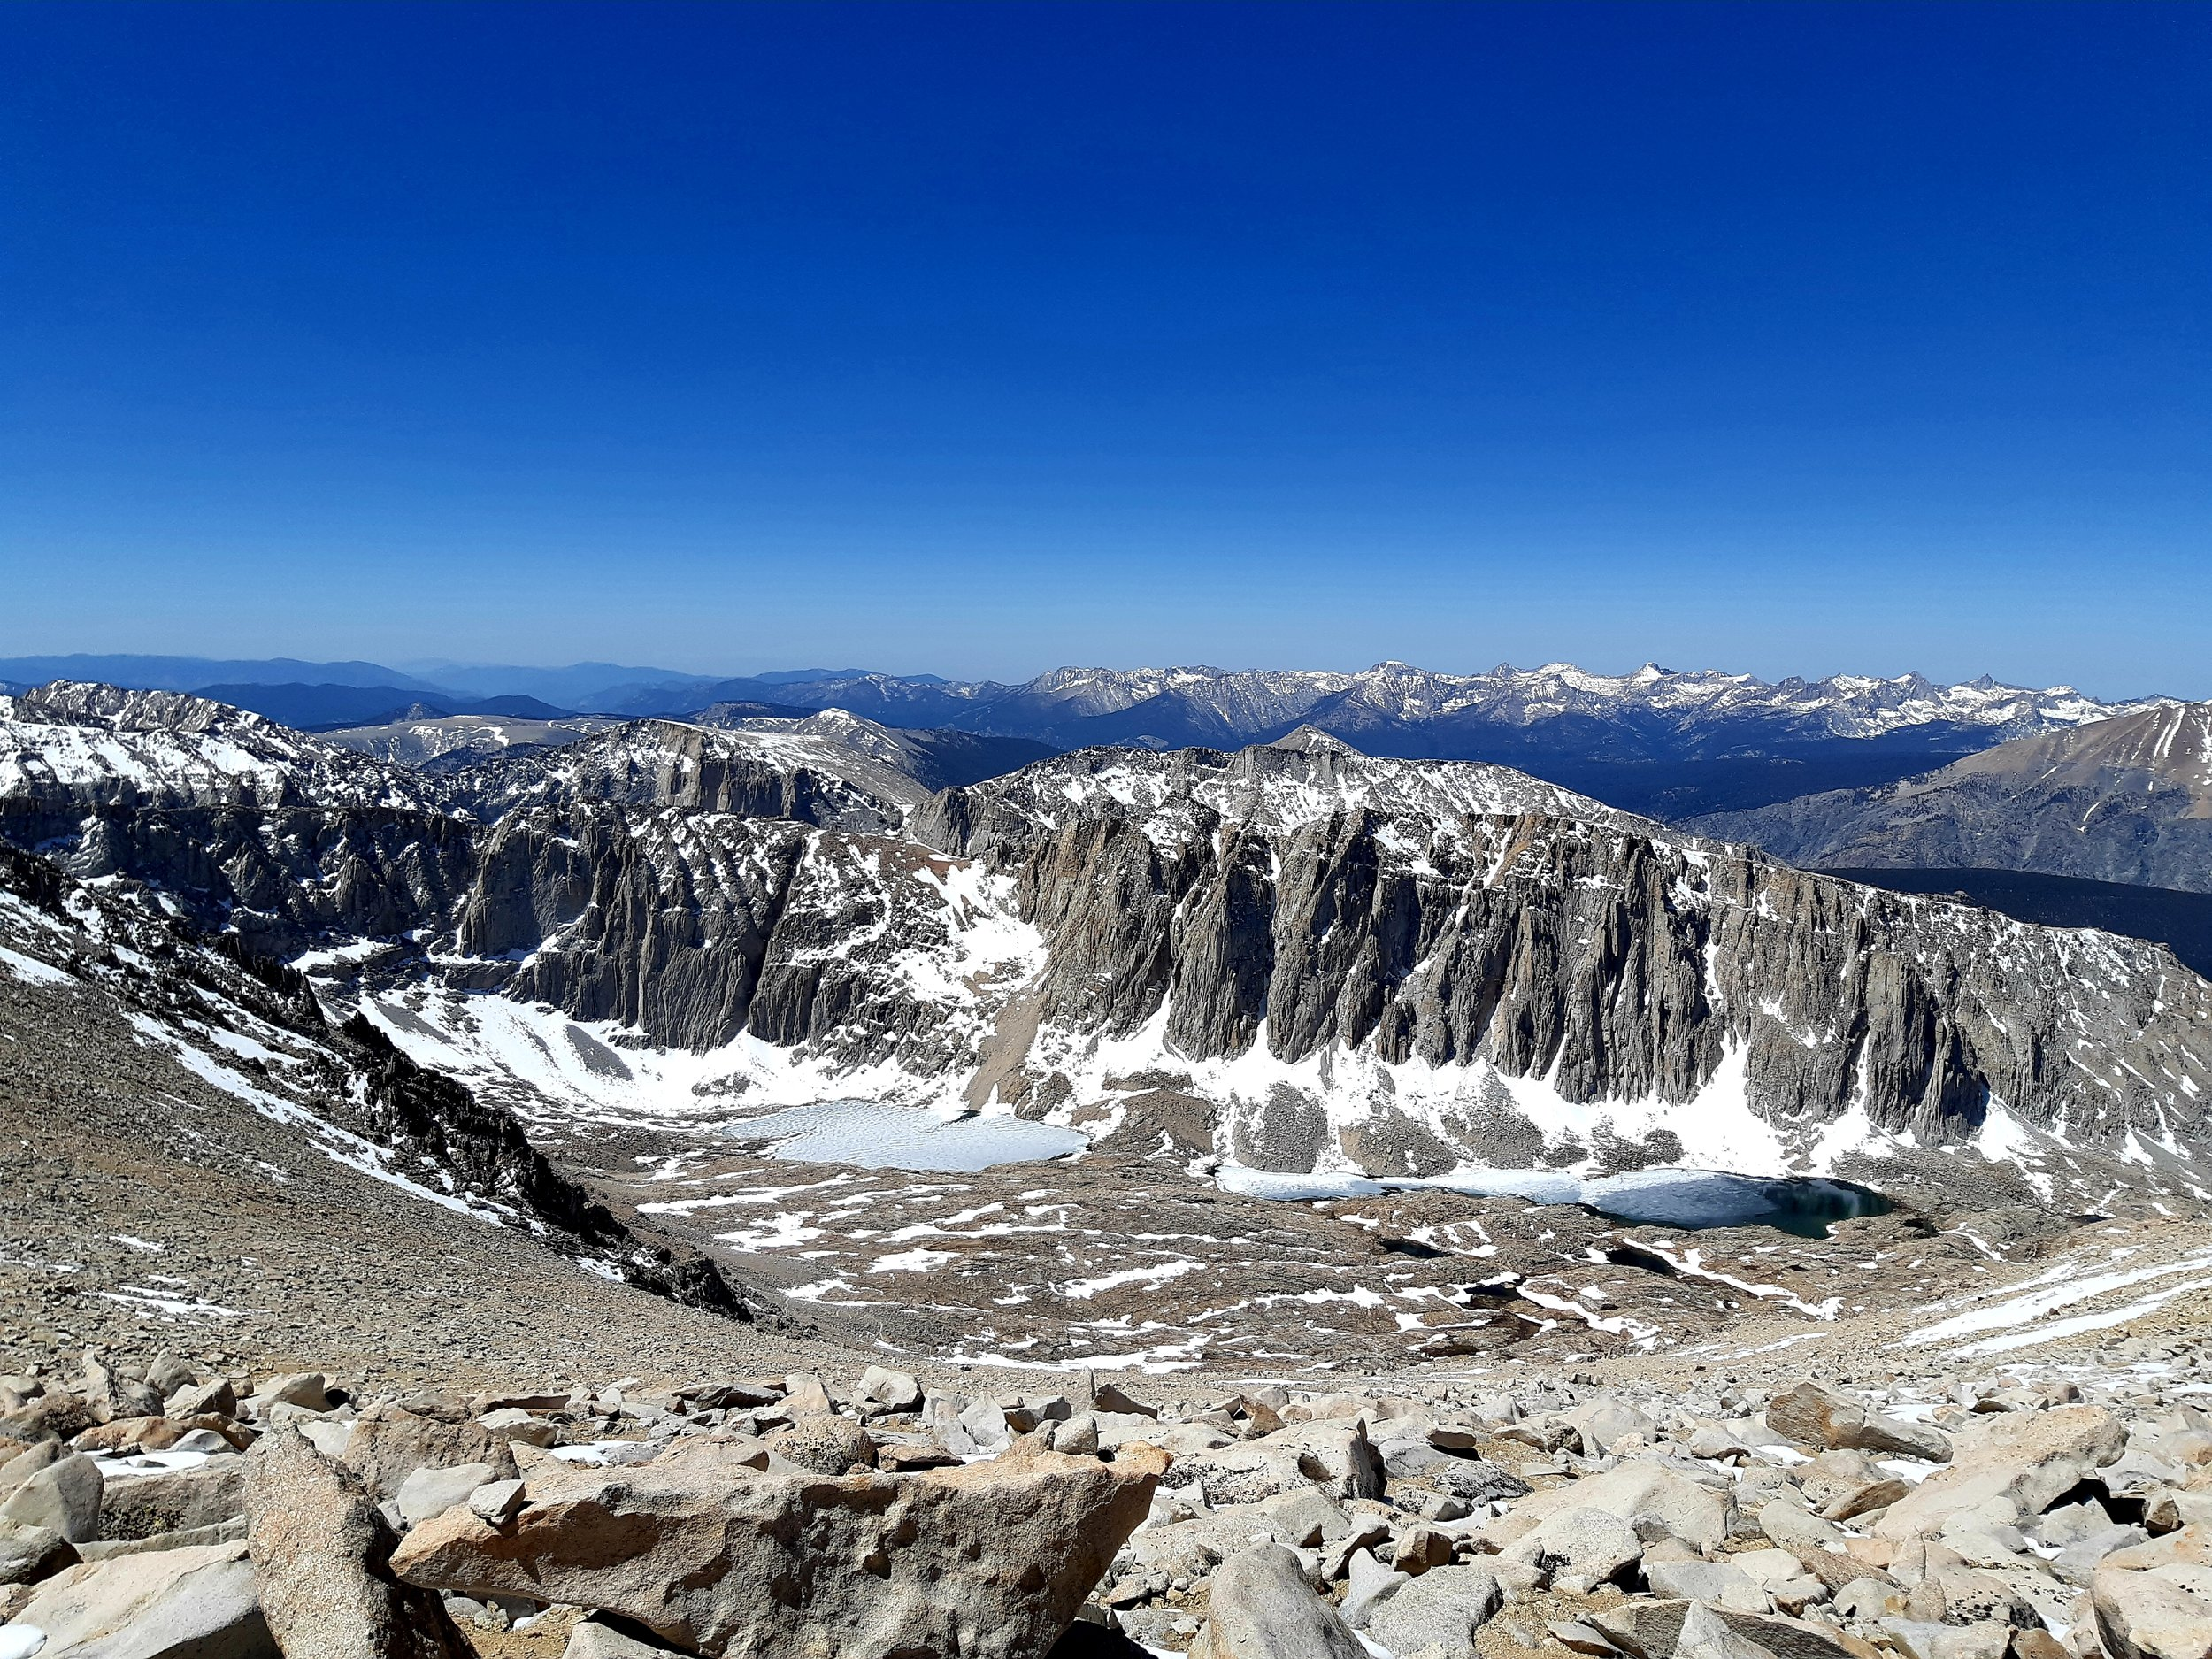 Summiting Mount Whitney @ 14,505 feet; the highest summit in the contiguous United States. CA.